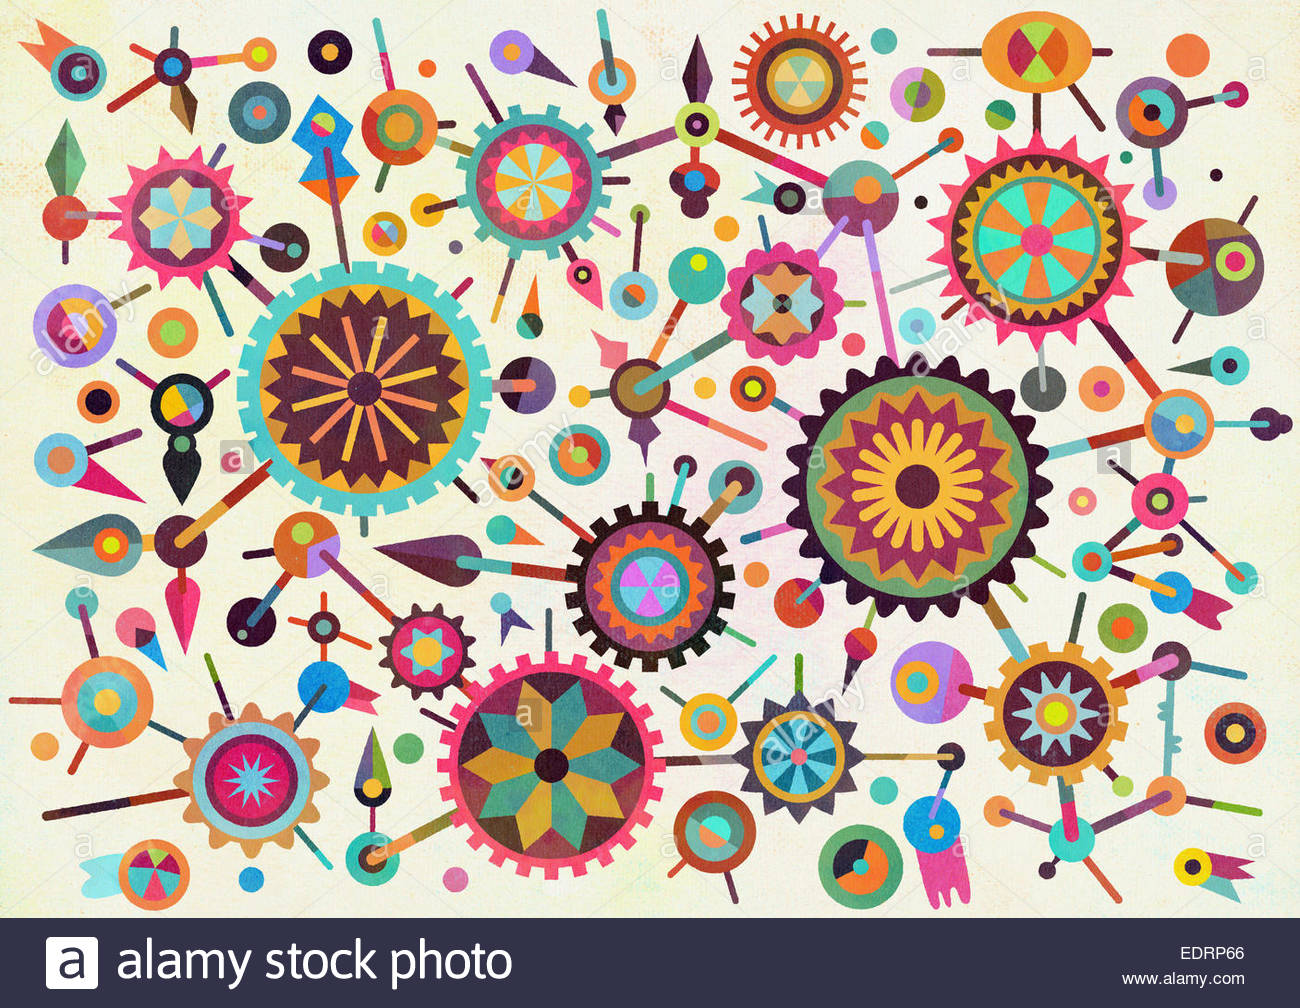 Abstract pattern of connected multicolored geometric shapes - Stock Image